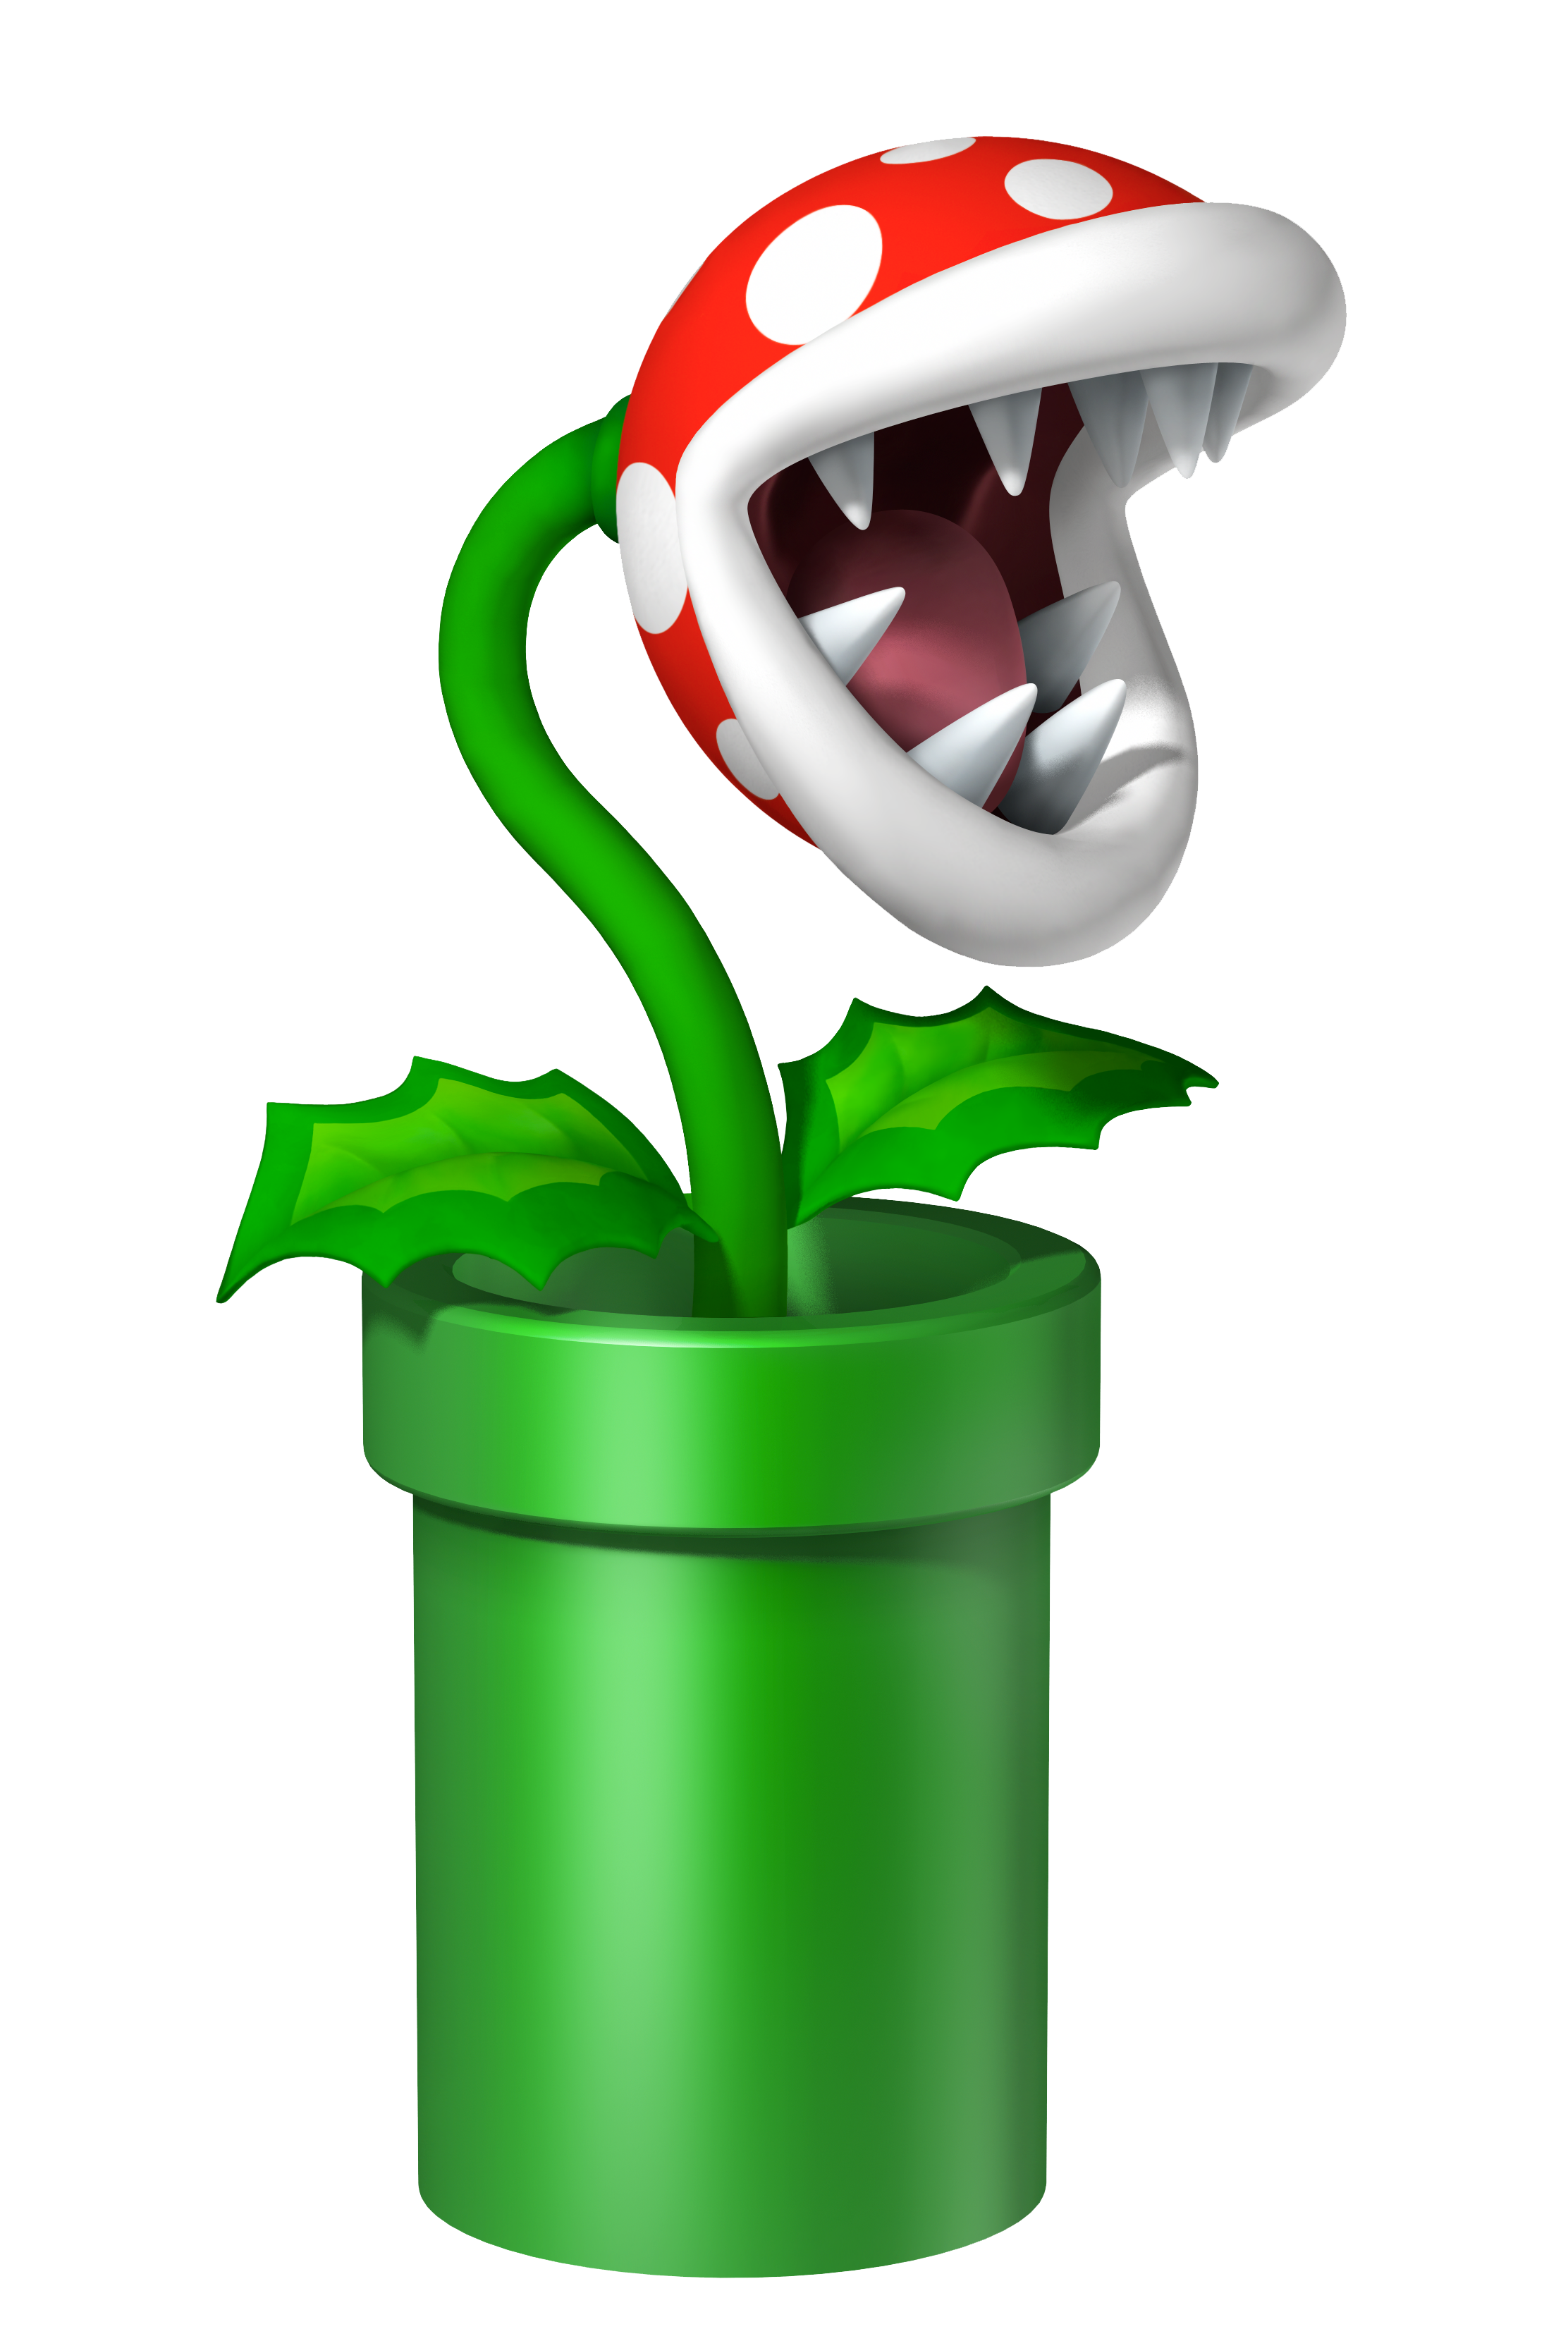 Tunnel clipart mario Very Costume Plant Bros Own